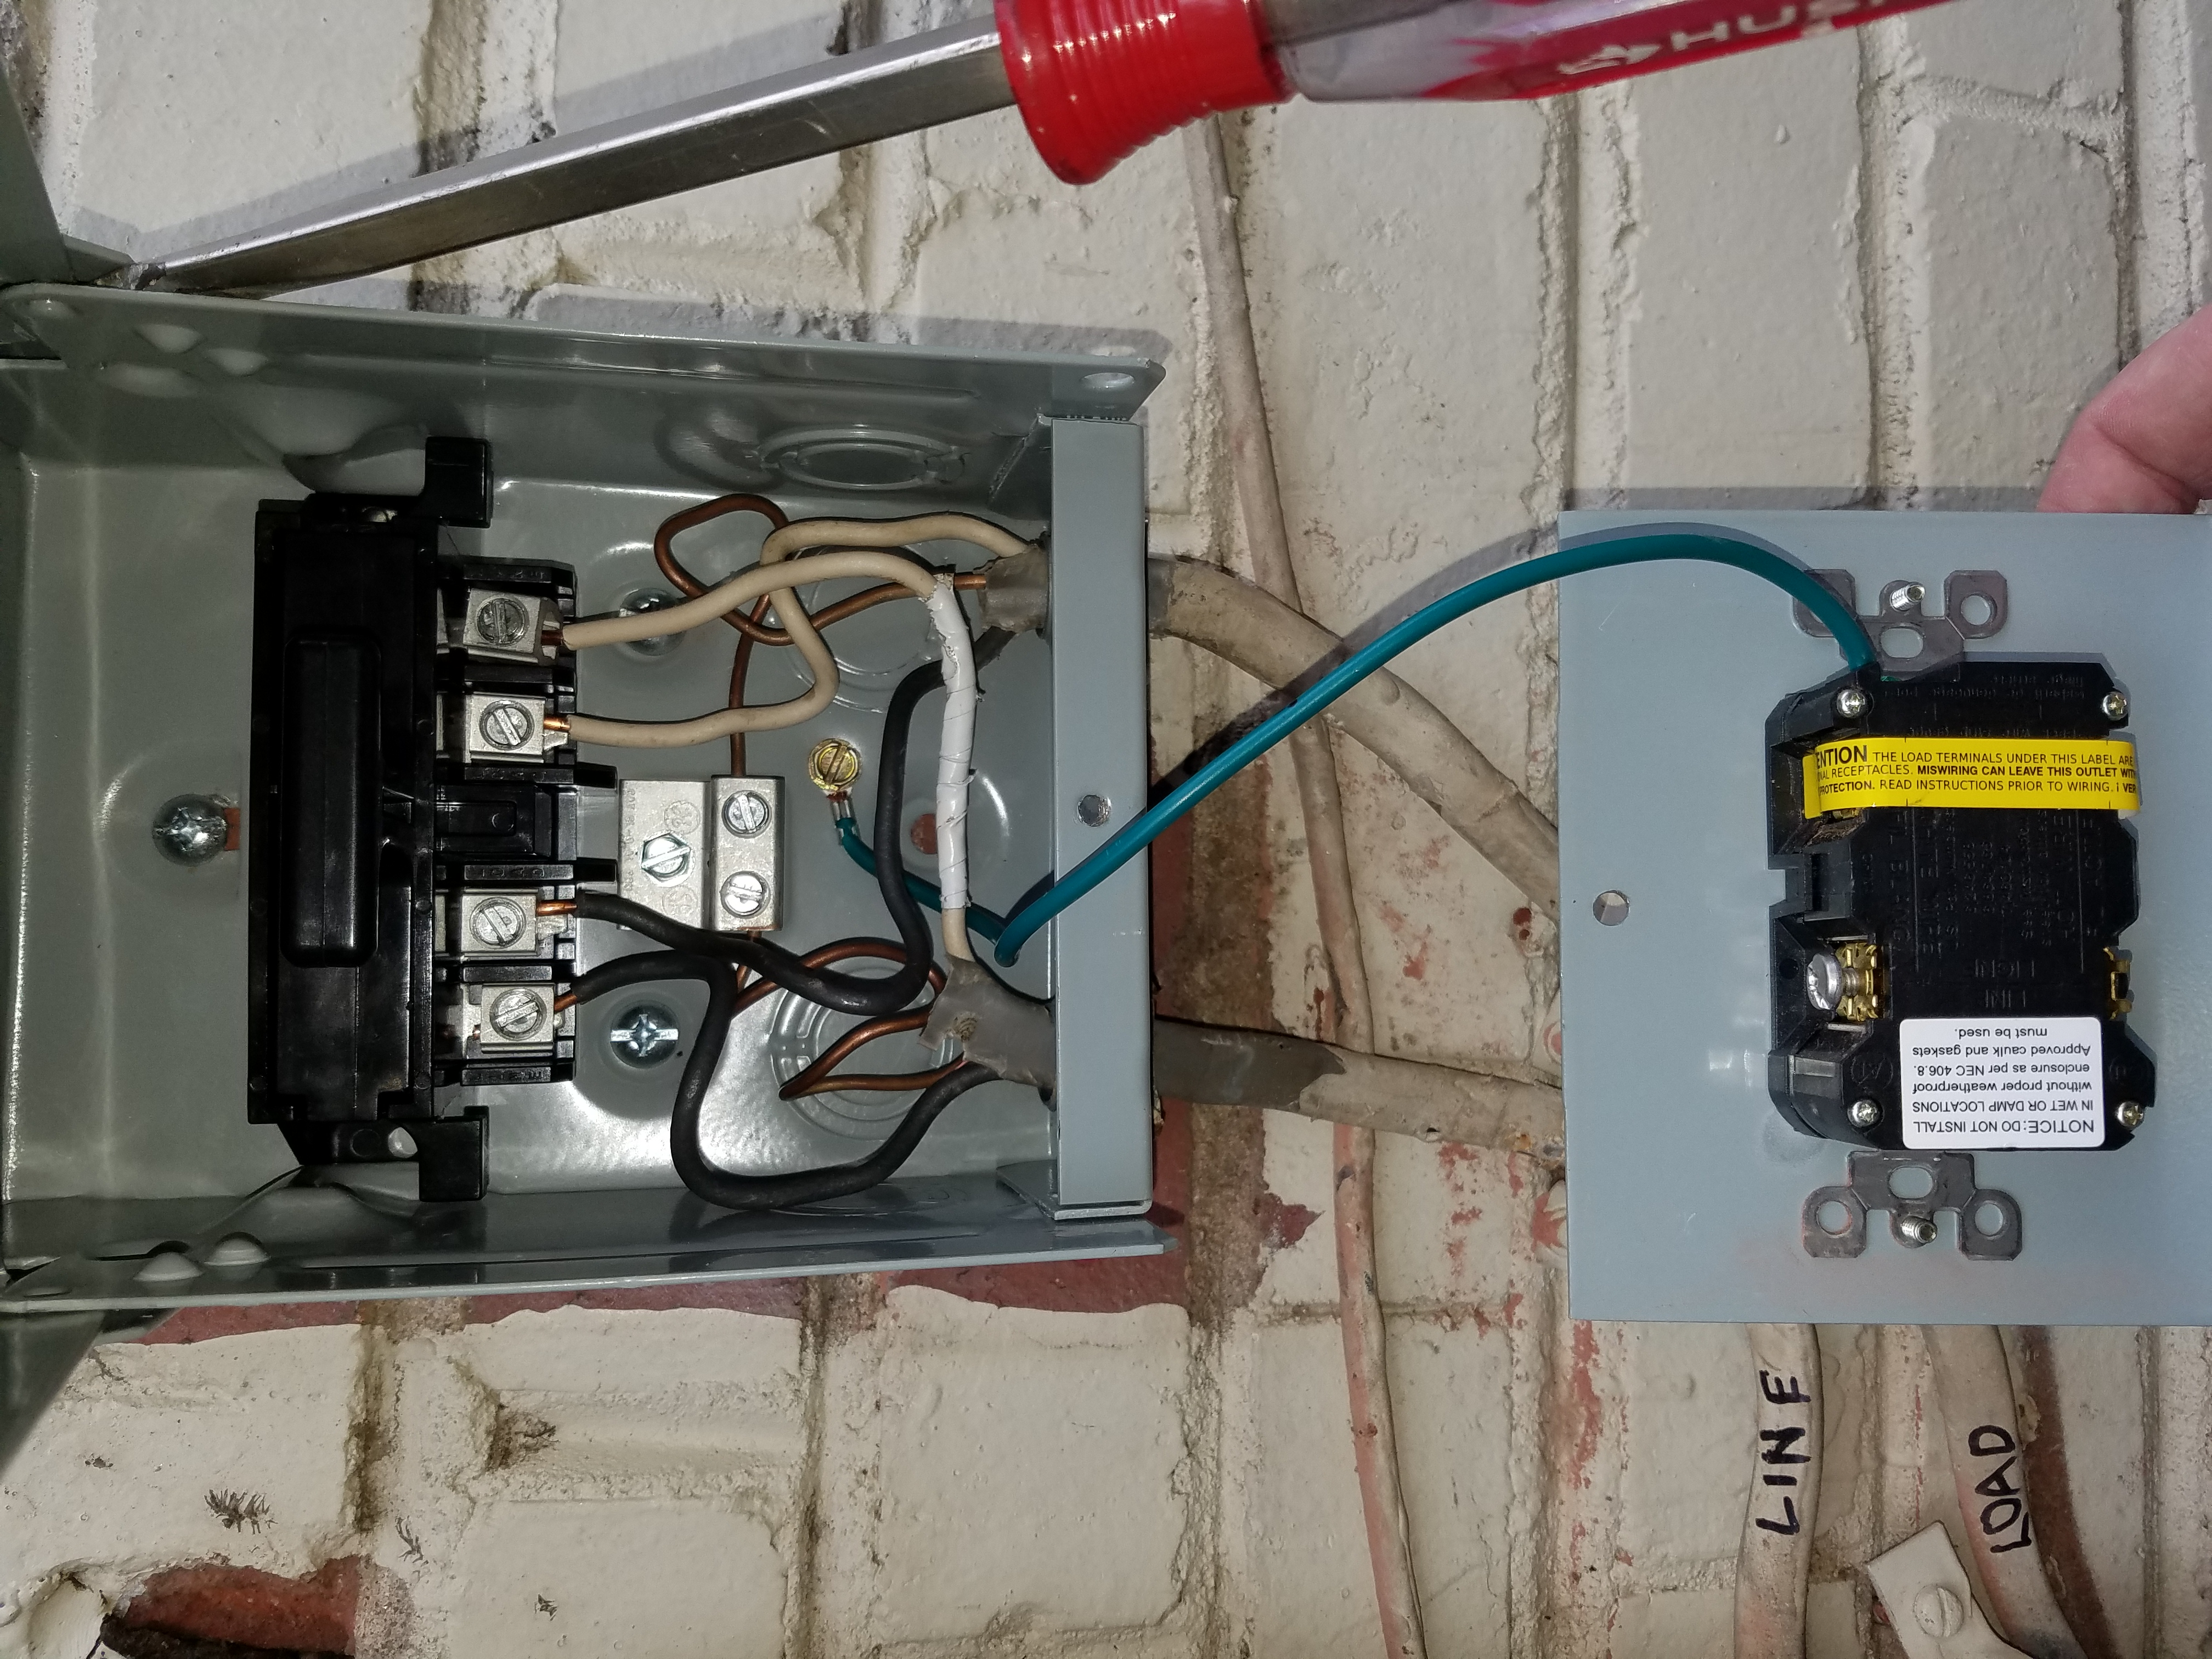 The Ac Guy Recommended Replacing Old Fused Shut Off With A Non Three Way Switch Miswired Gfci Pic